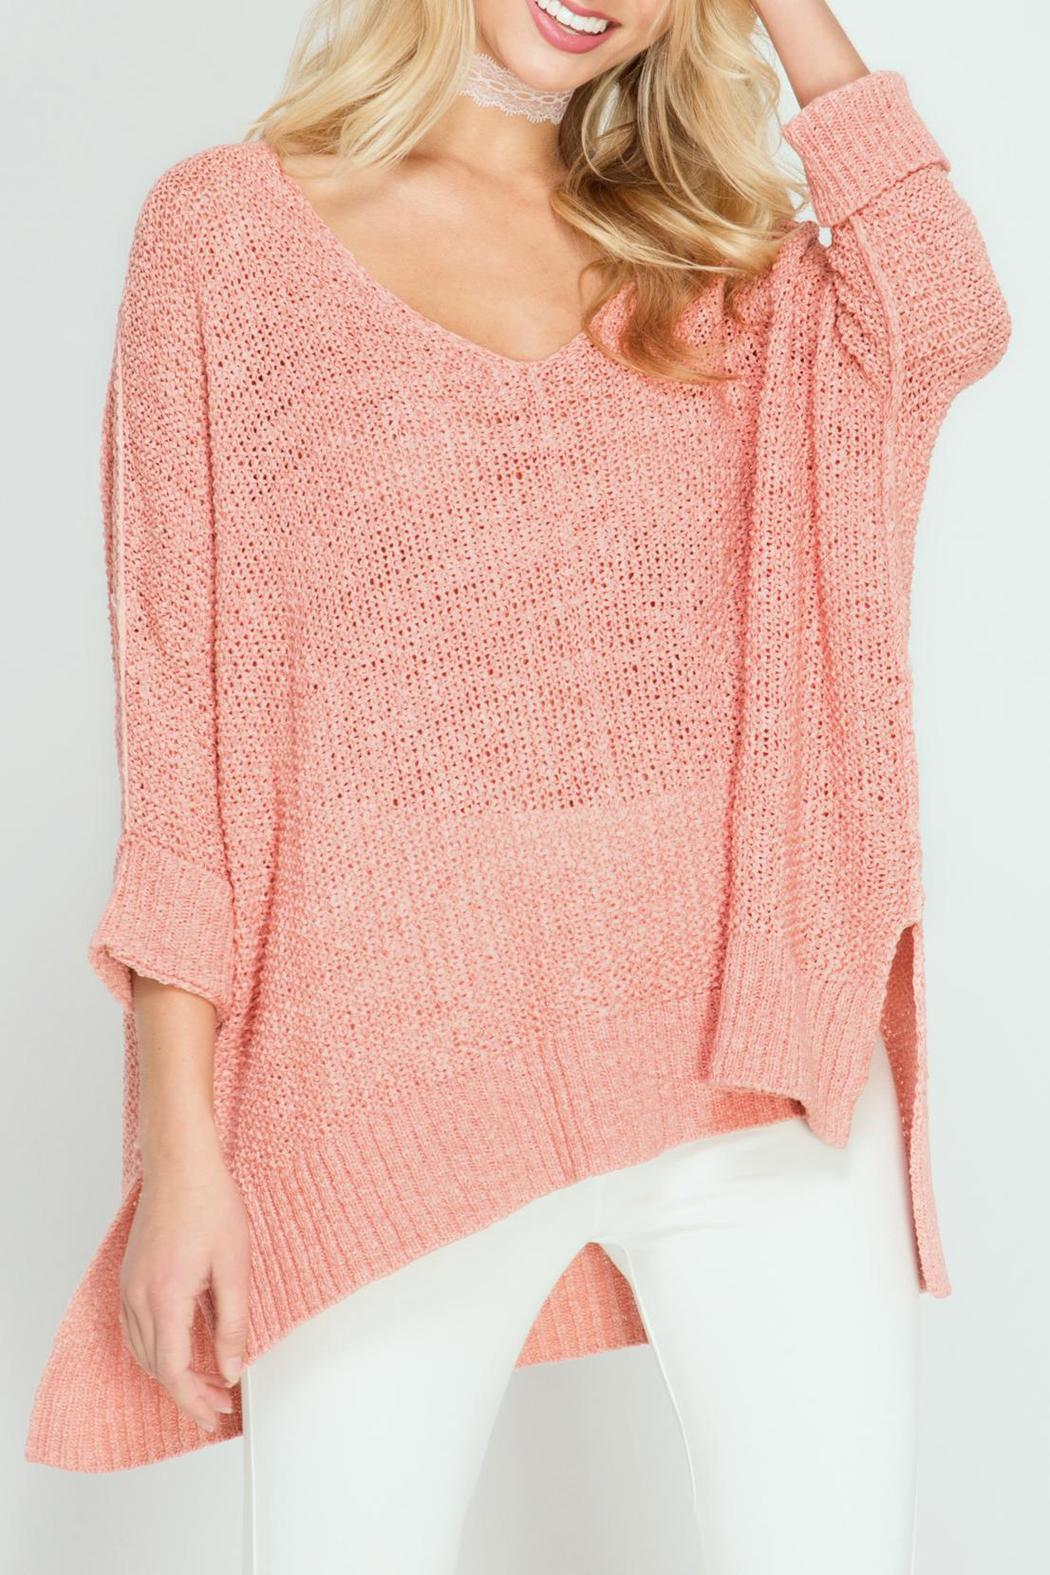 She Sky High Low Knit Sweater From New Jersey By Sandy Banks